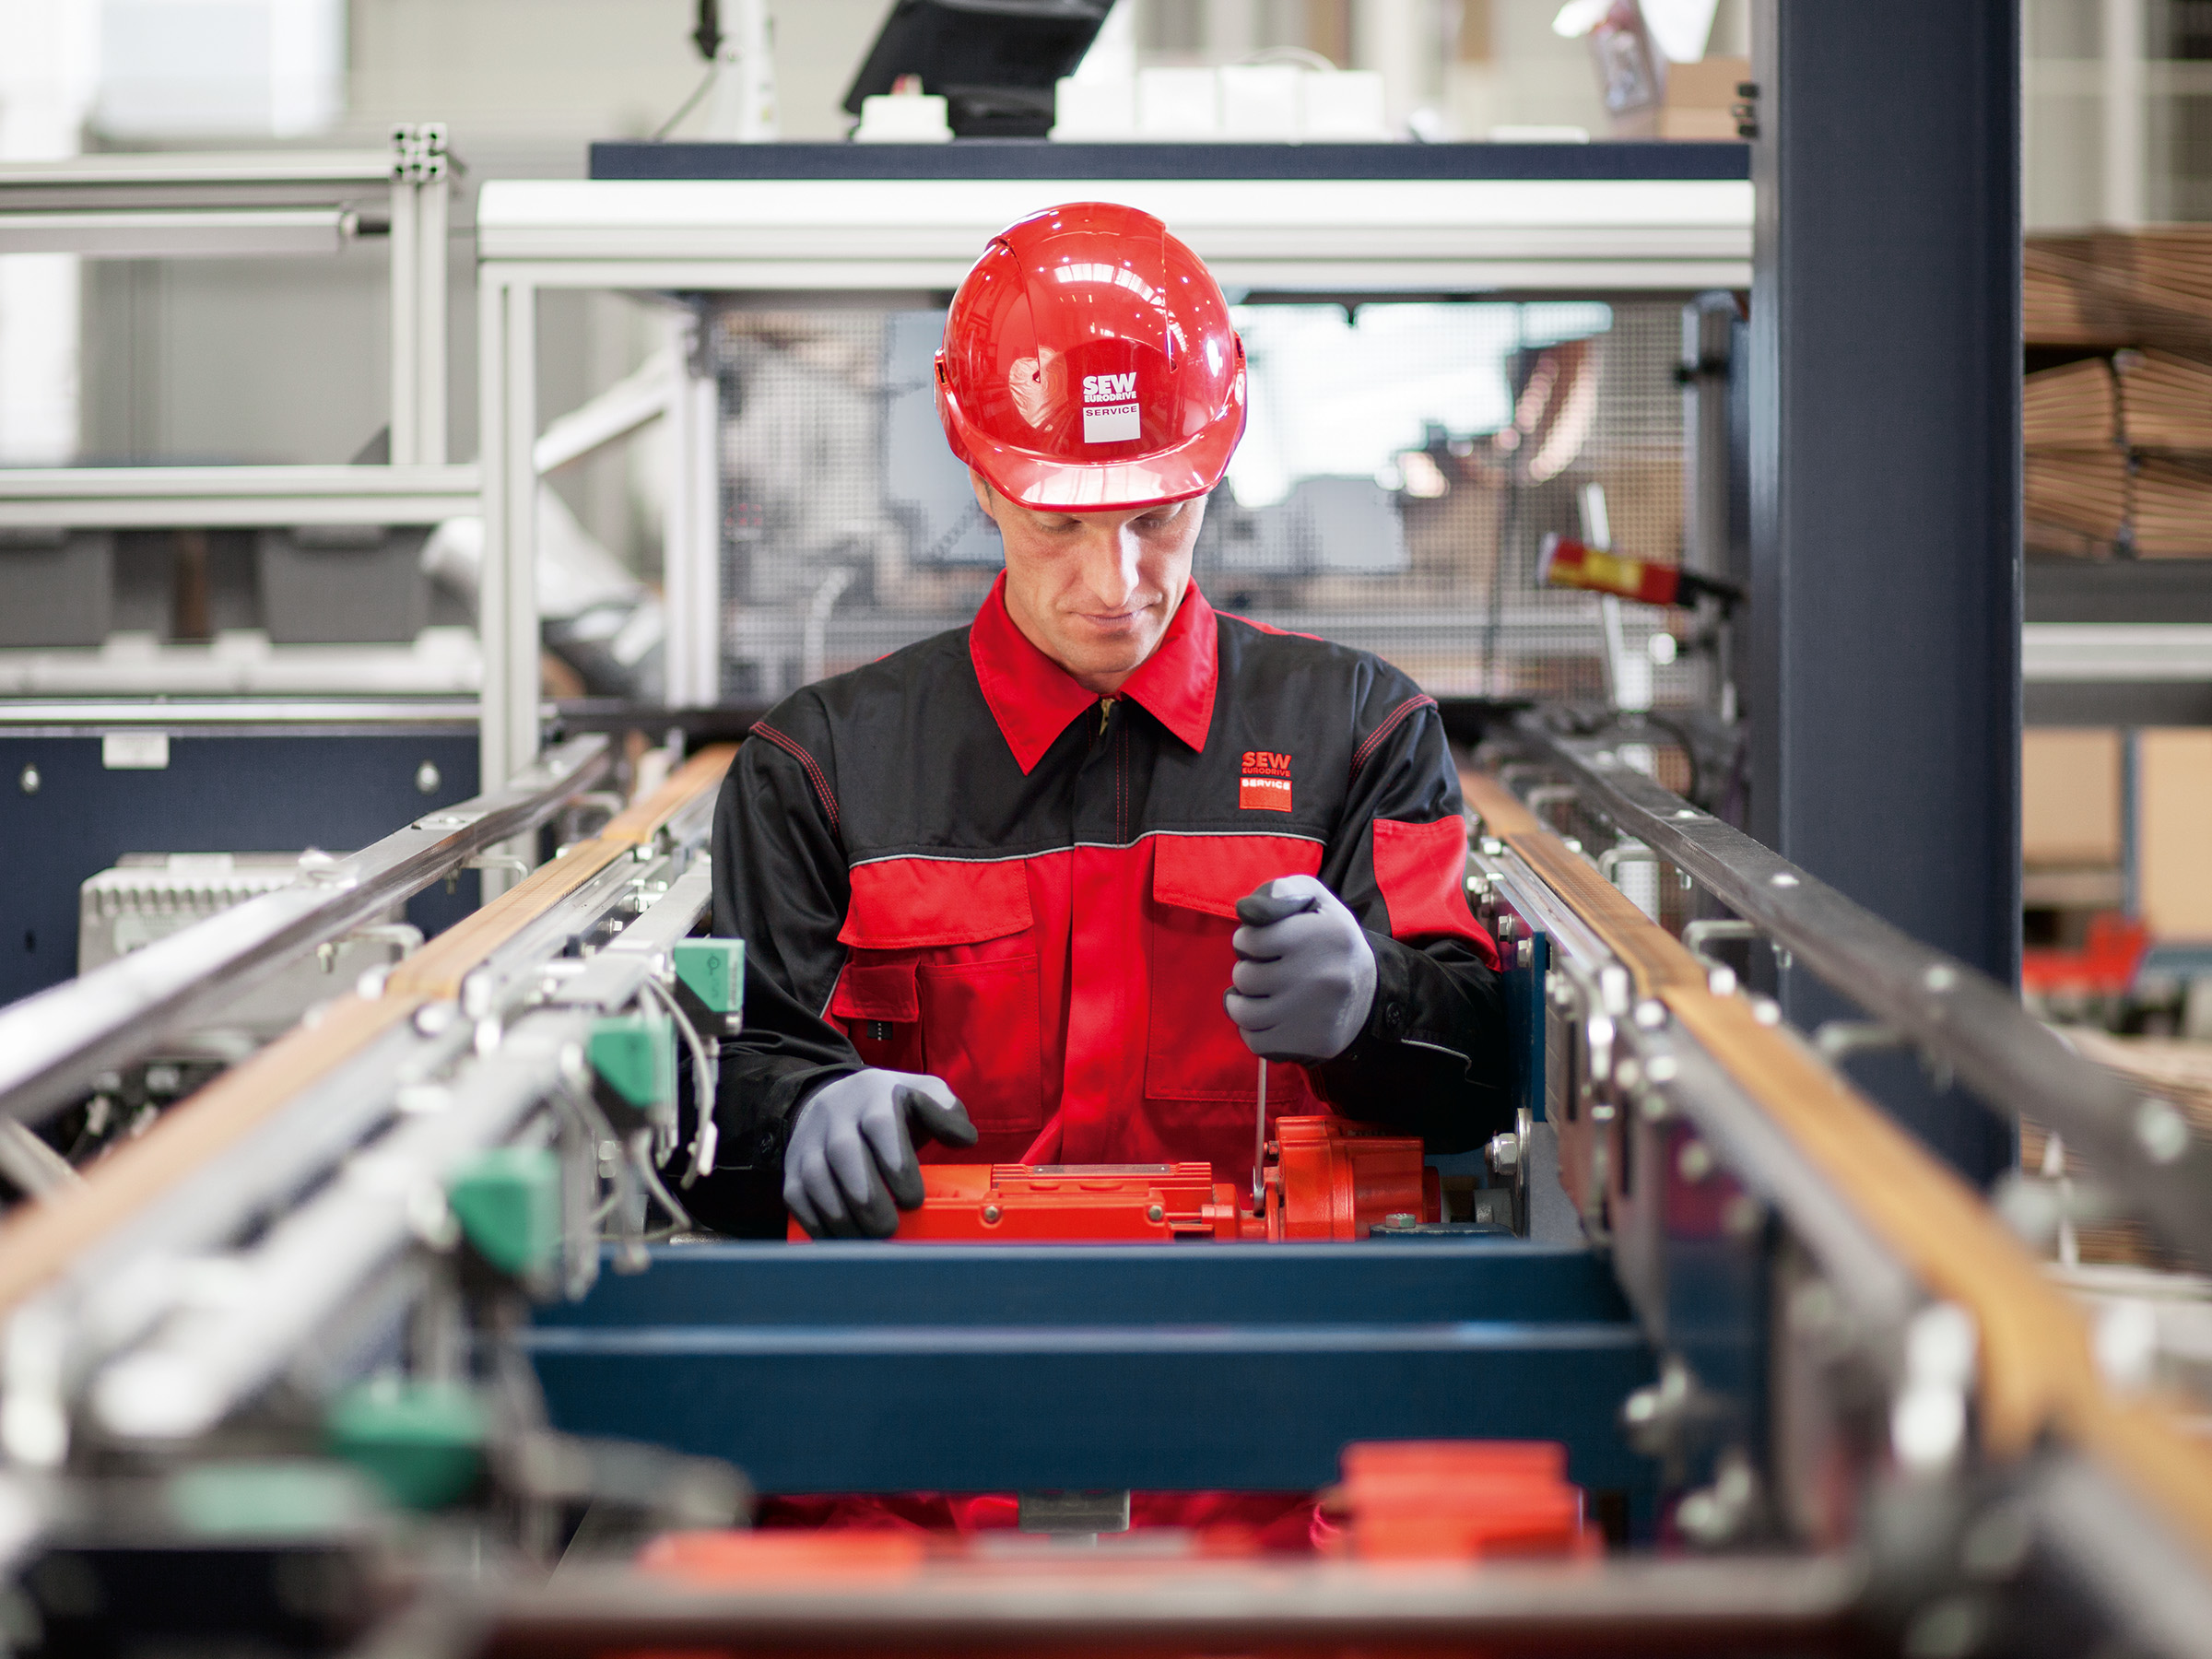 SEW-EURODRIVE employee carrying out maintenance work